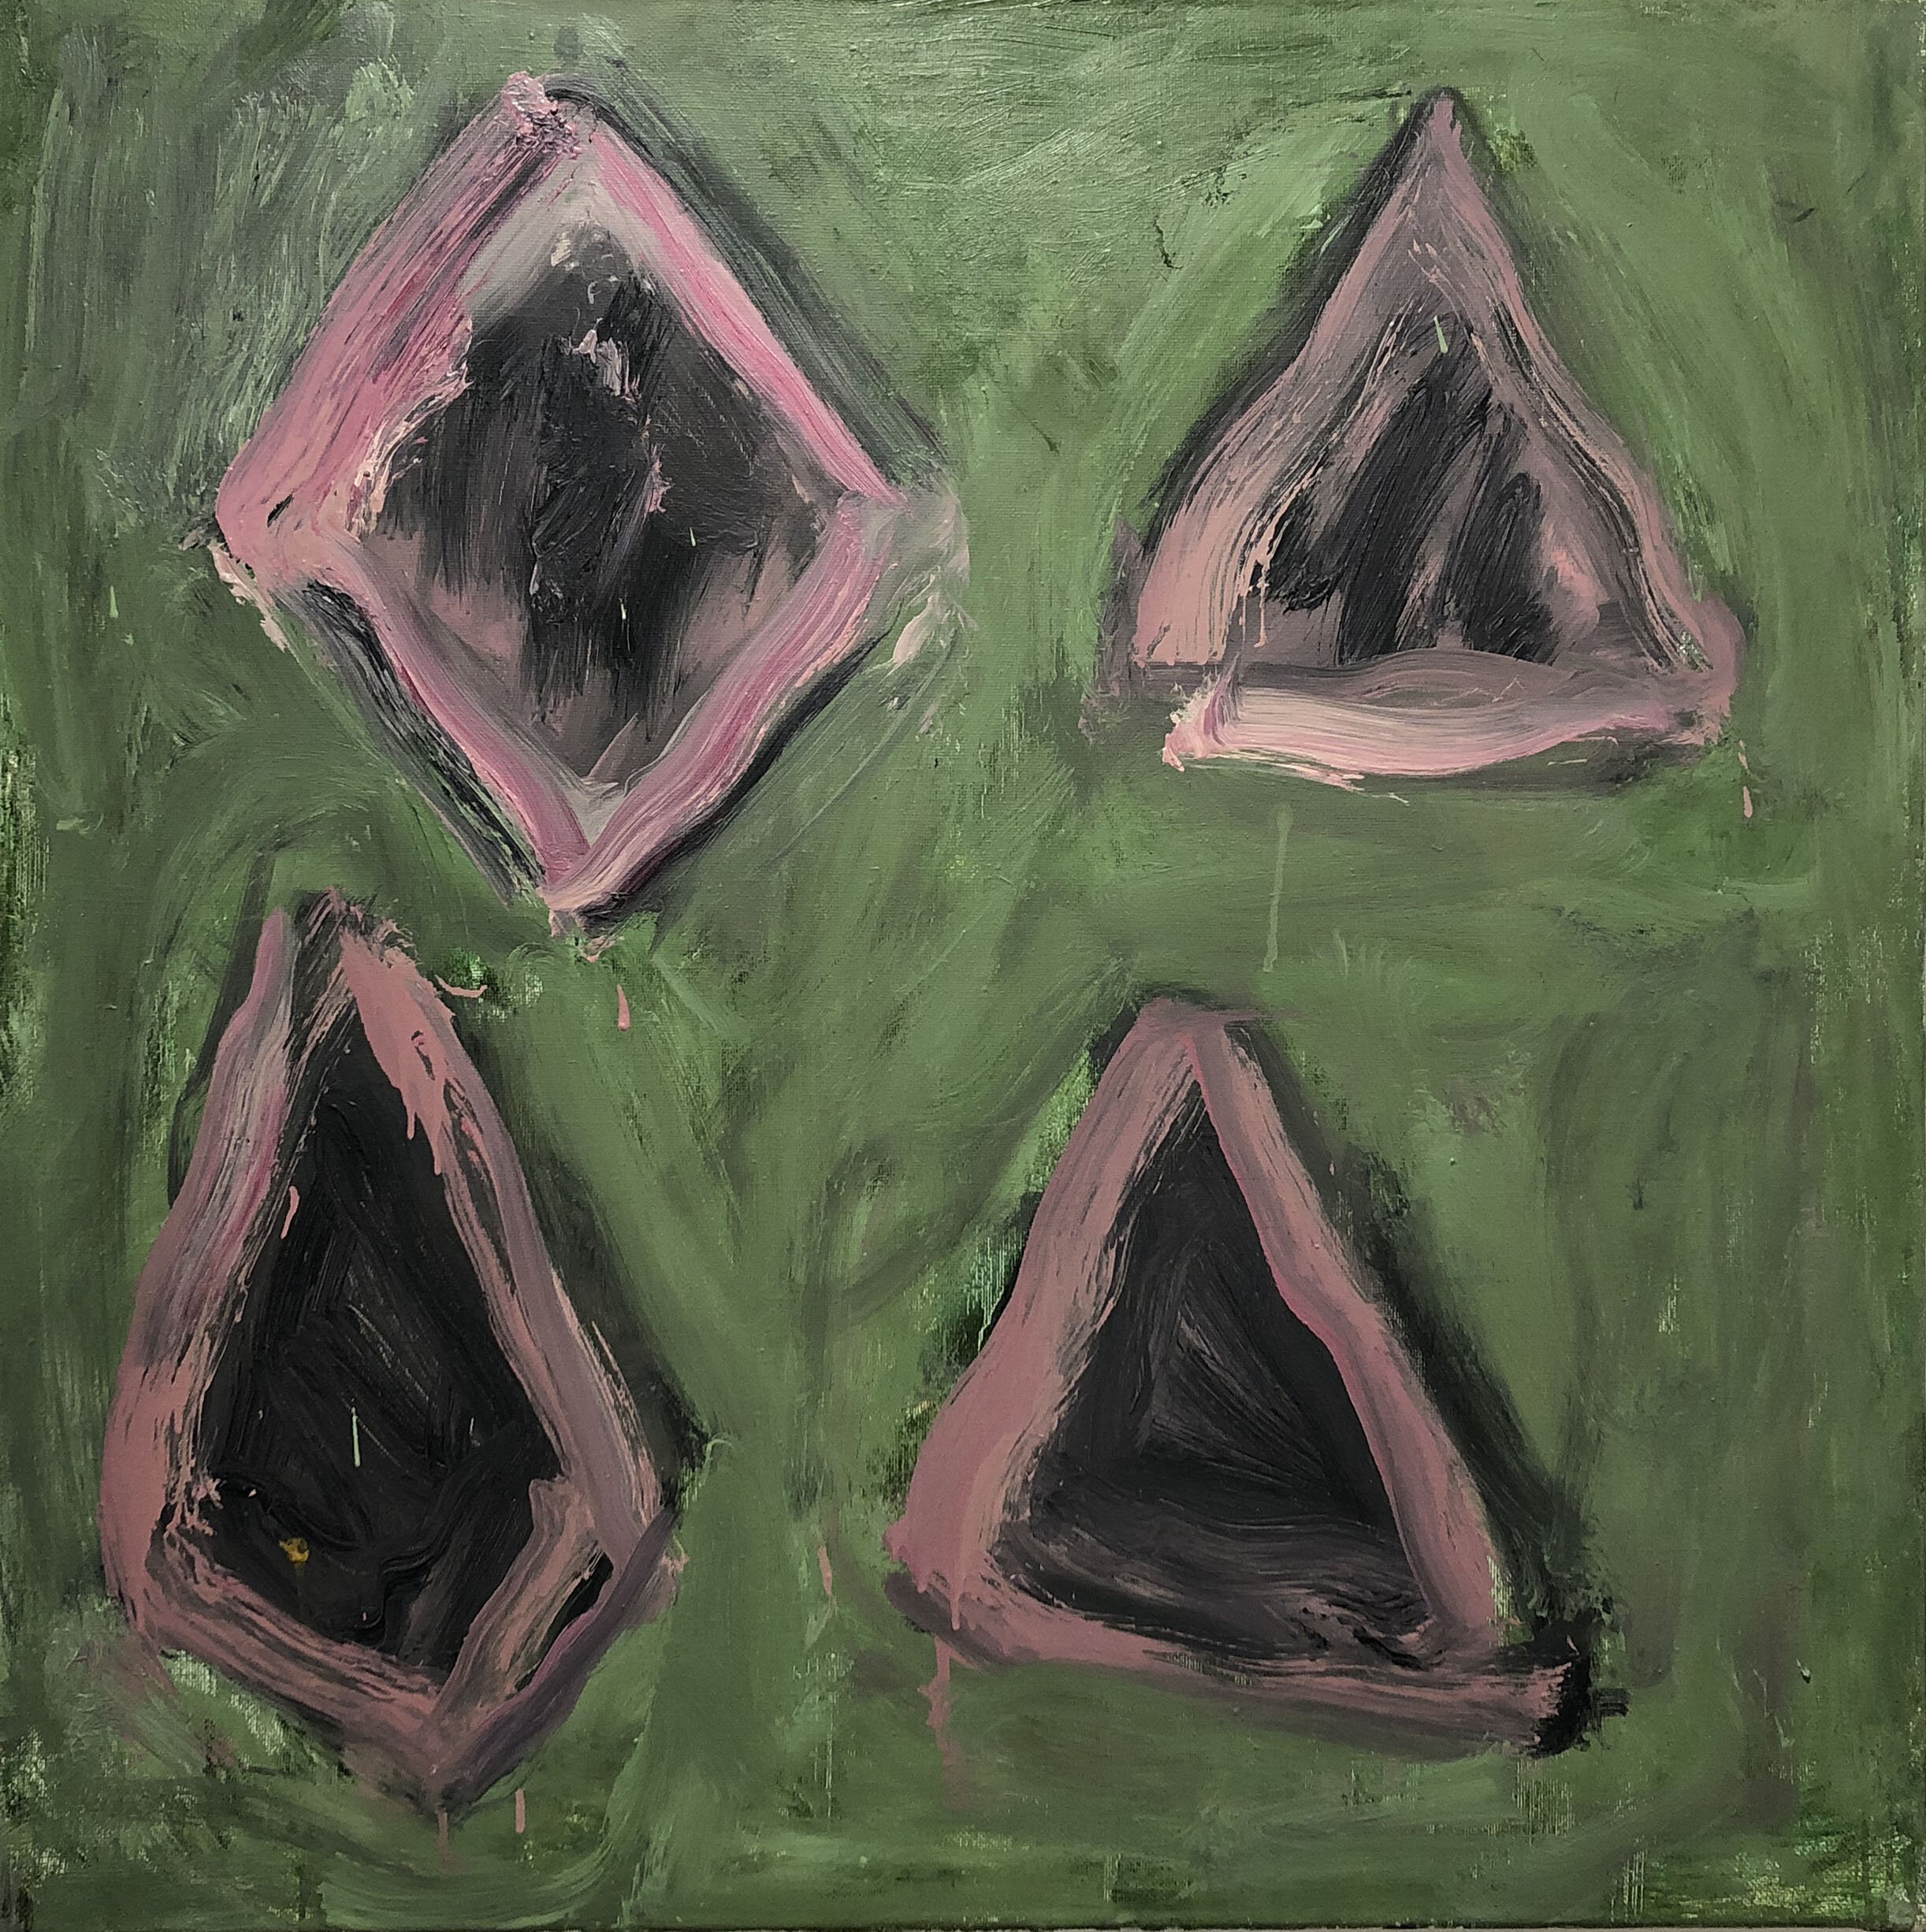 untitled,  2000 oil on linen 36 x 36 inches